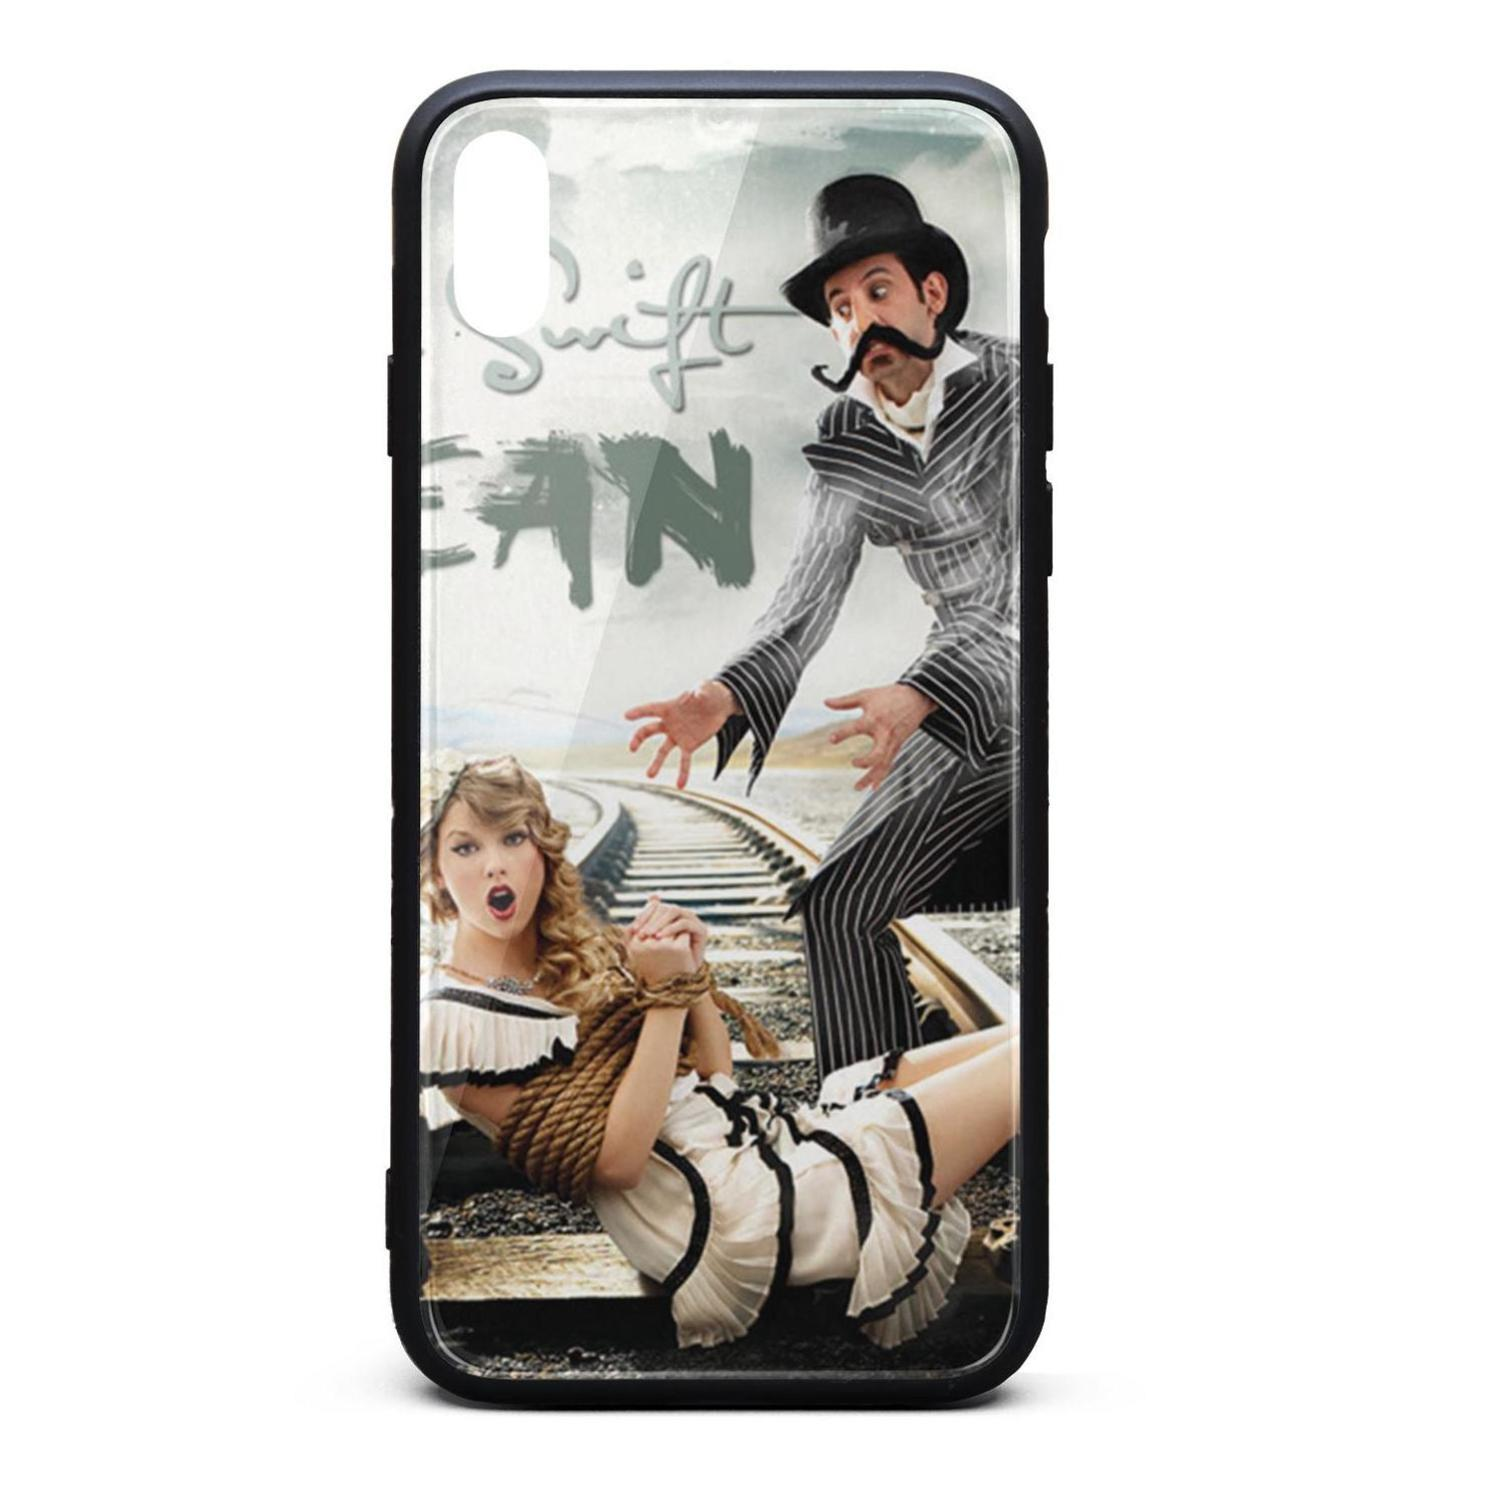 personlaised iphone xs max case